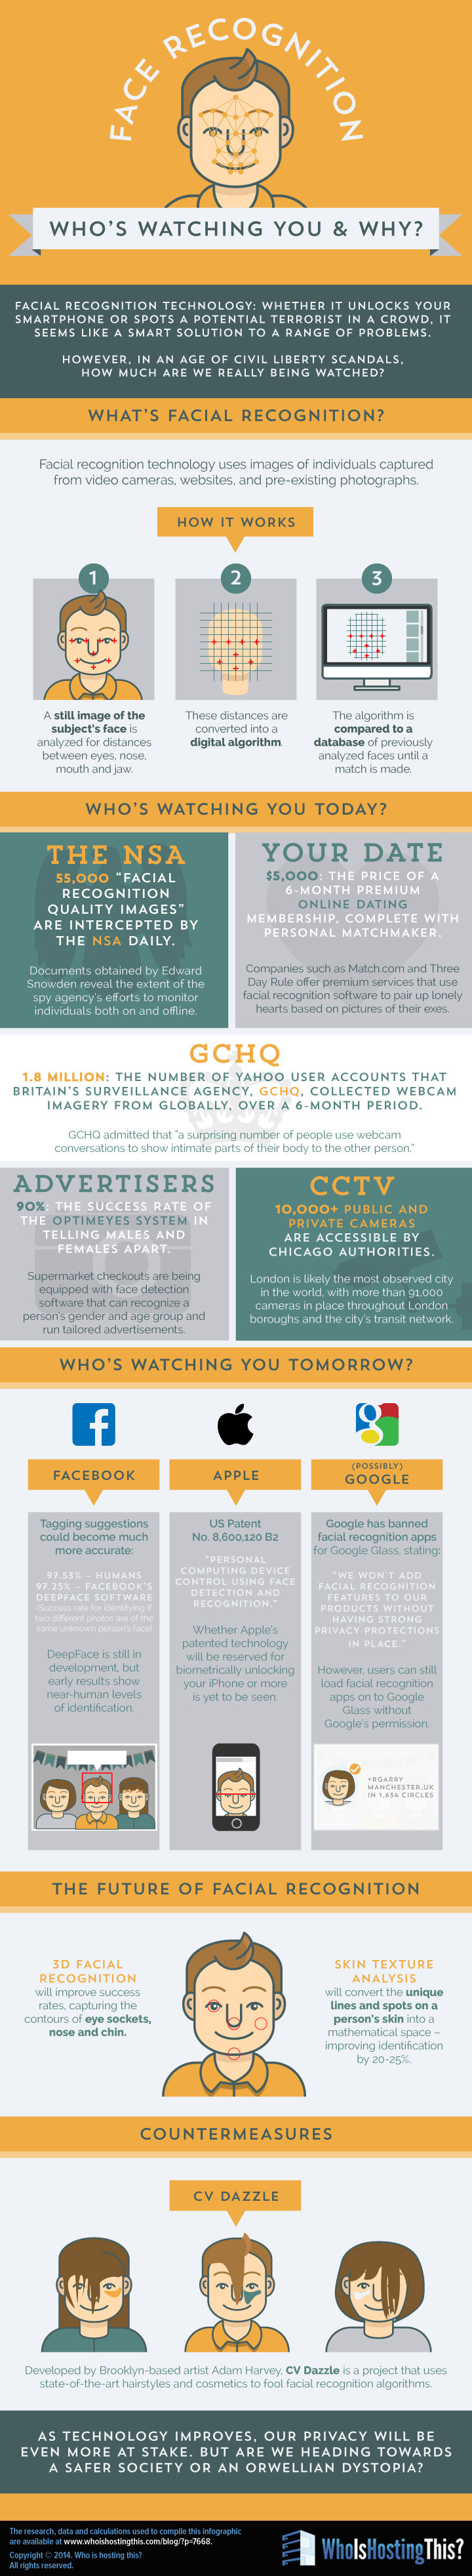 Infographic: Face Recognition: Who's Watching and Why?